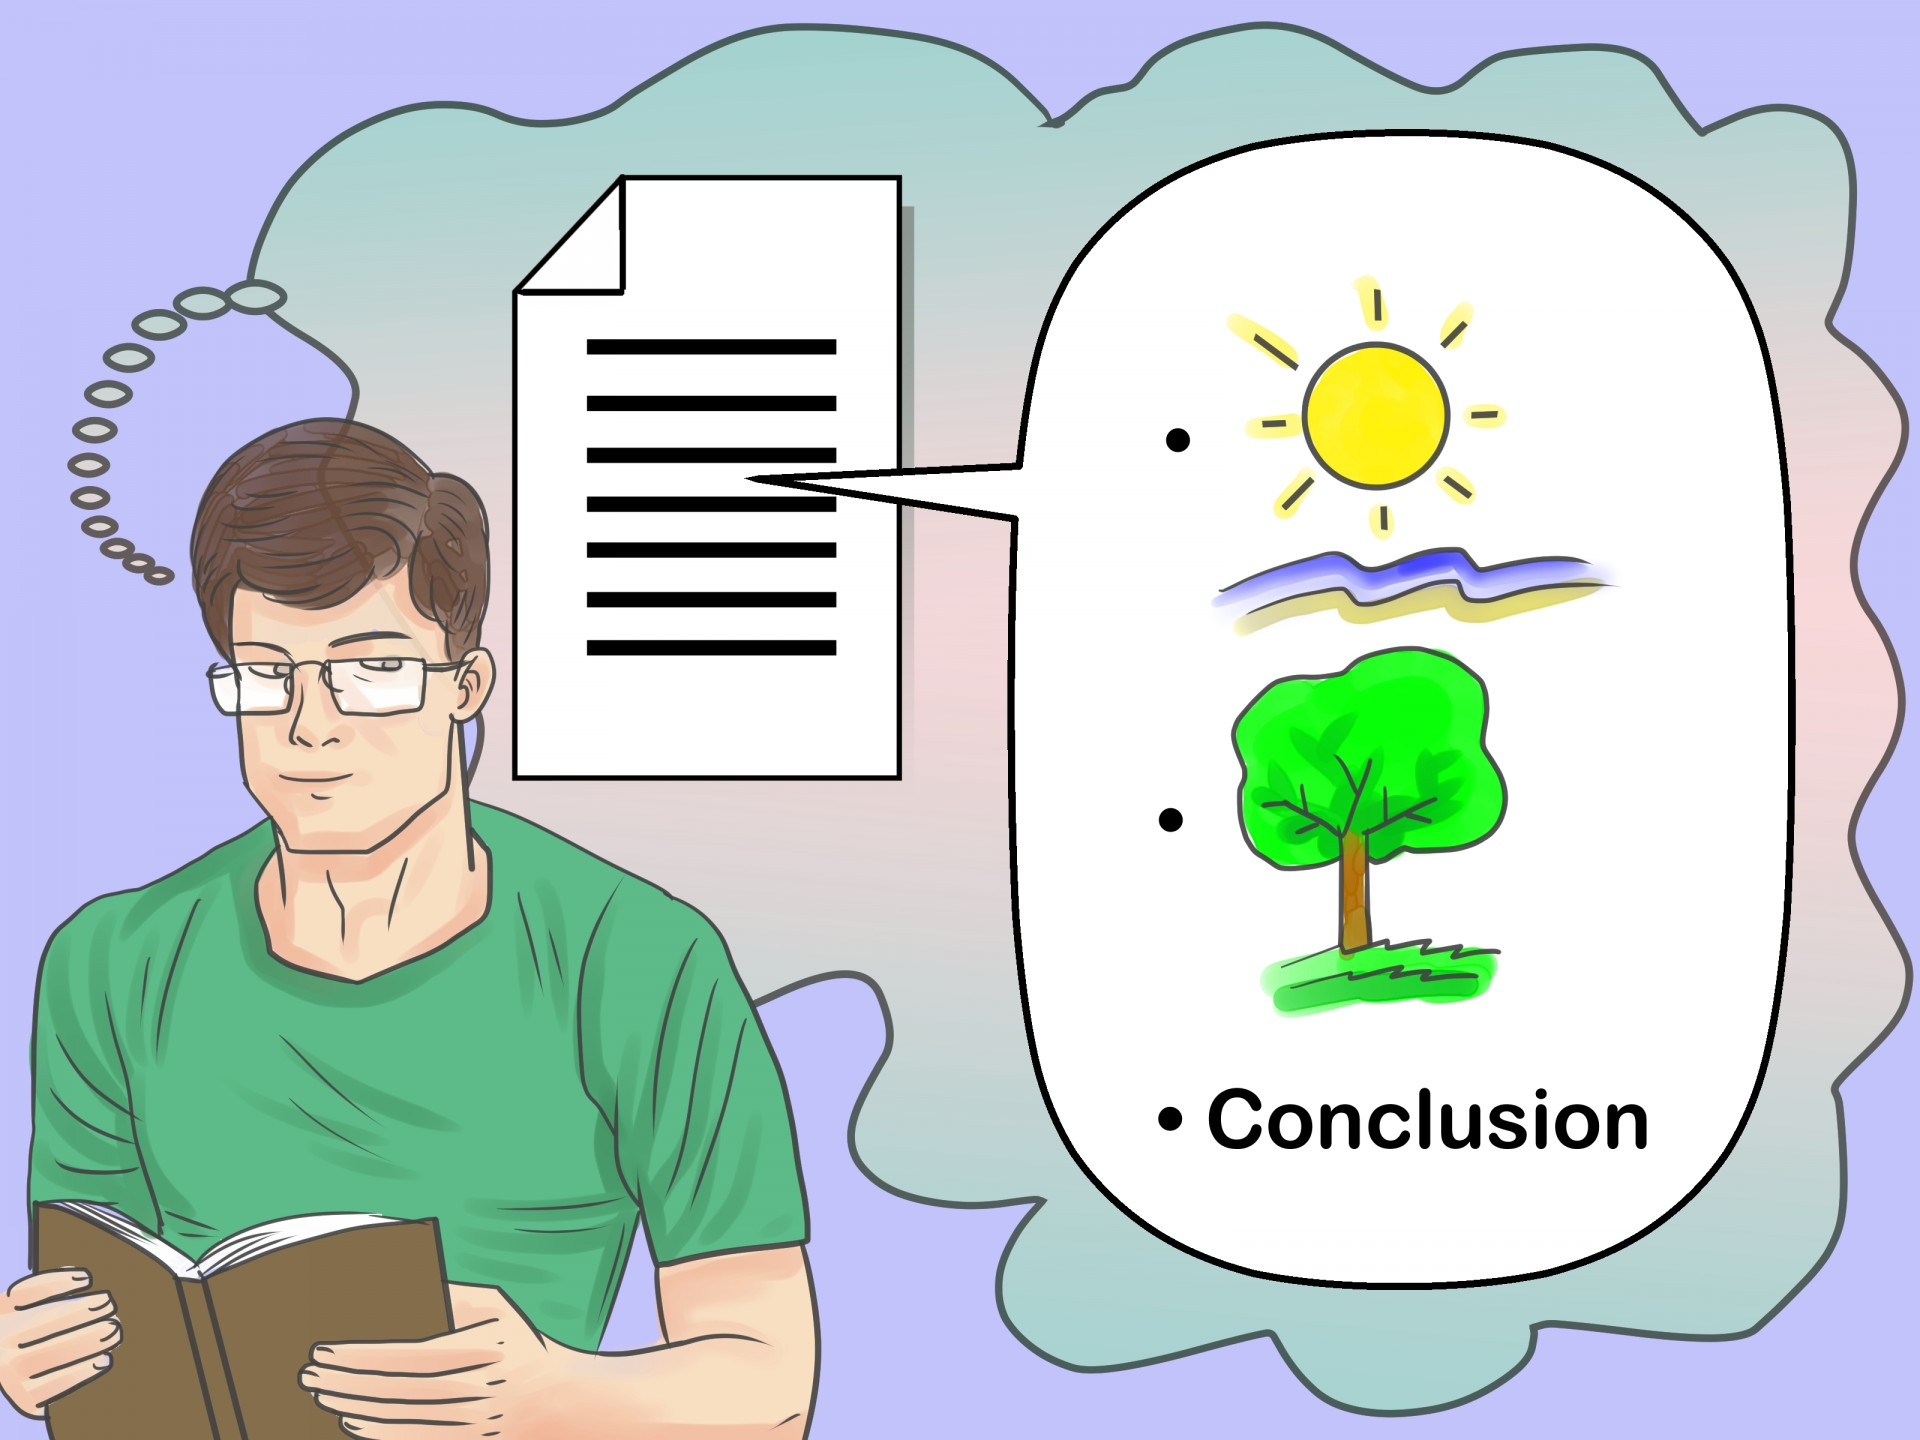 018 Write Compare And Contrast Essay Step Version Example Stupendous Structure Ppt Format Outline 1920